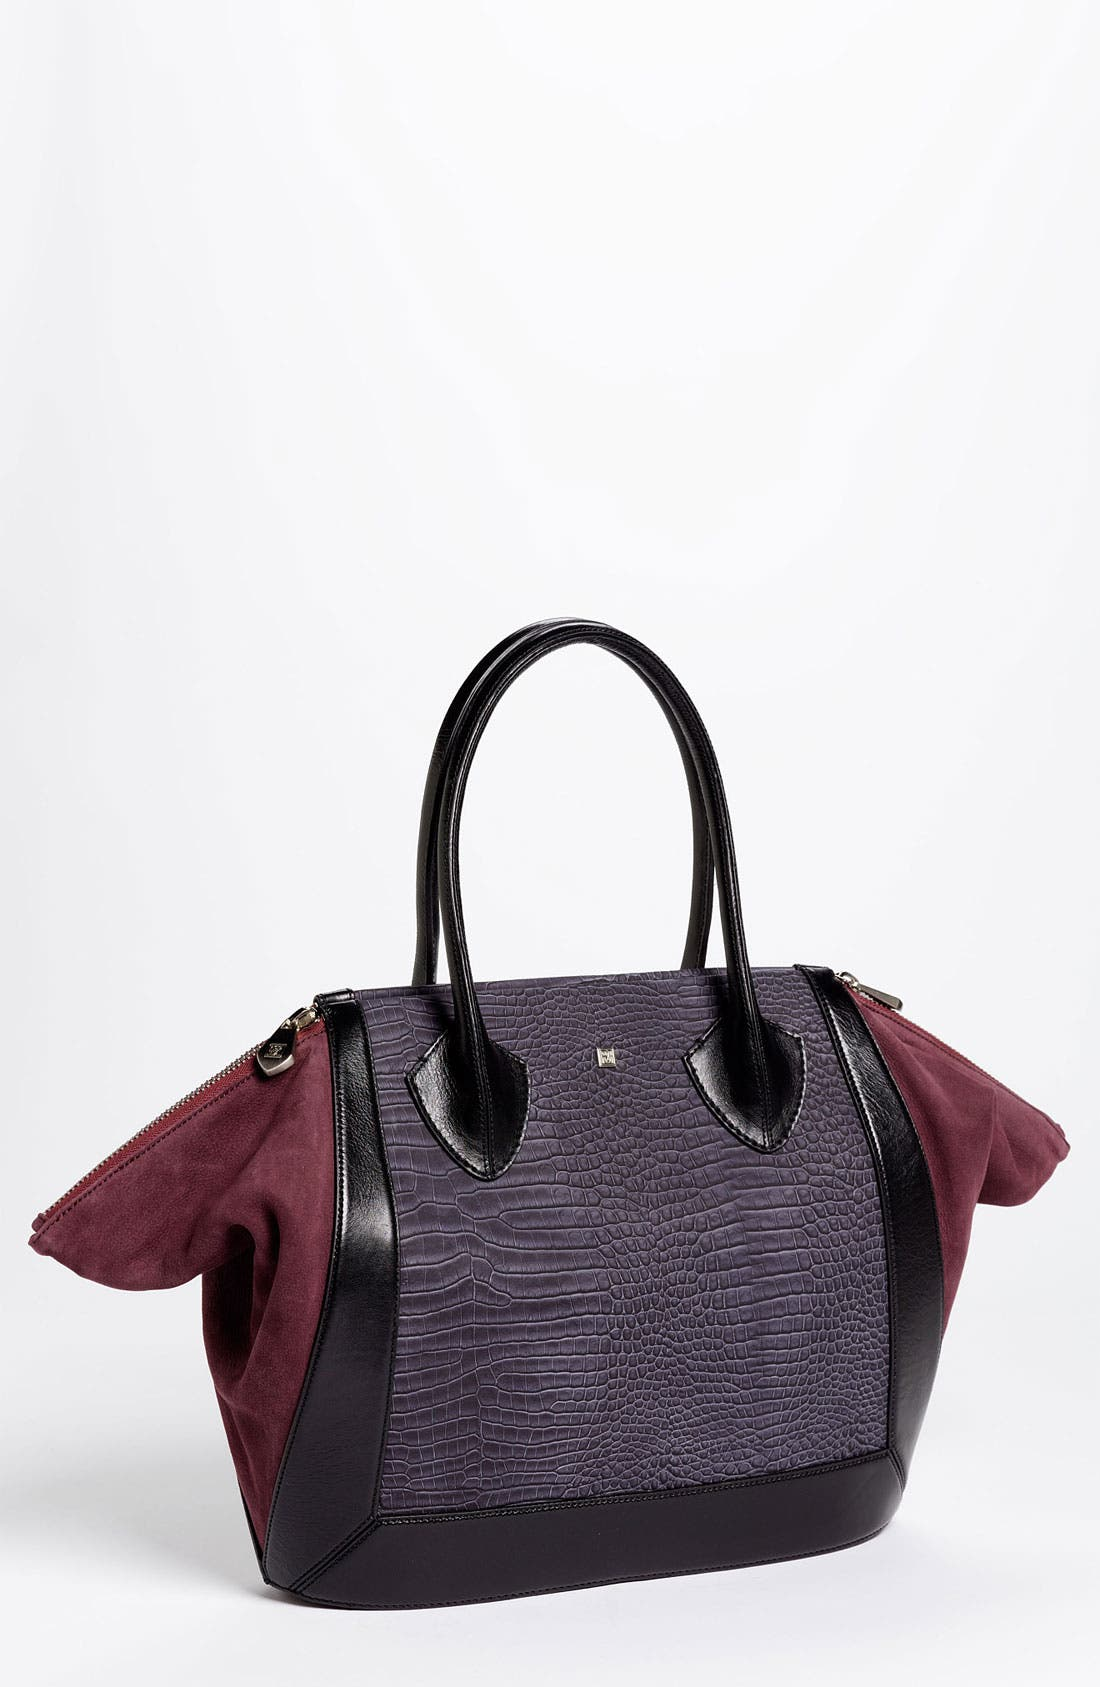 'Prado - Medium' Tote,                             Main thumbnail 1, color,                             Stone Croc